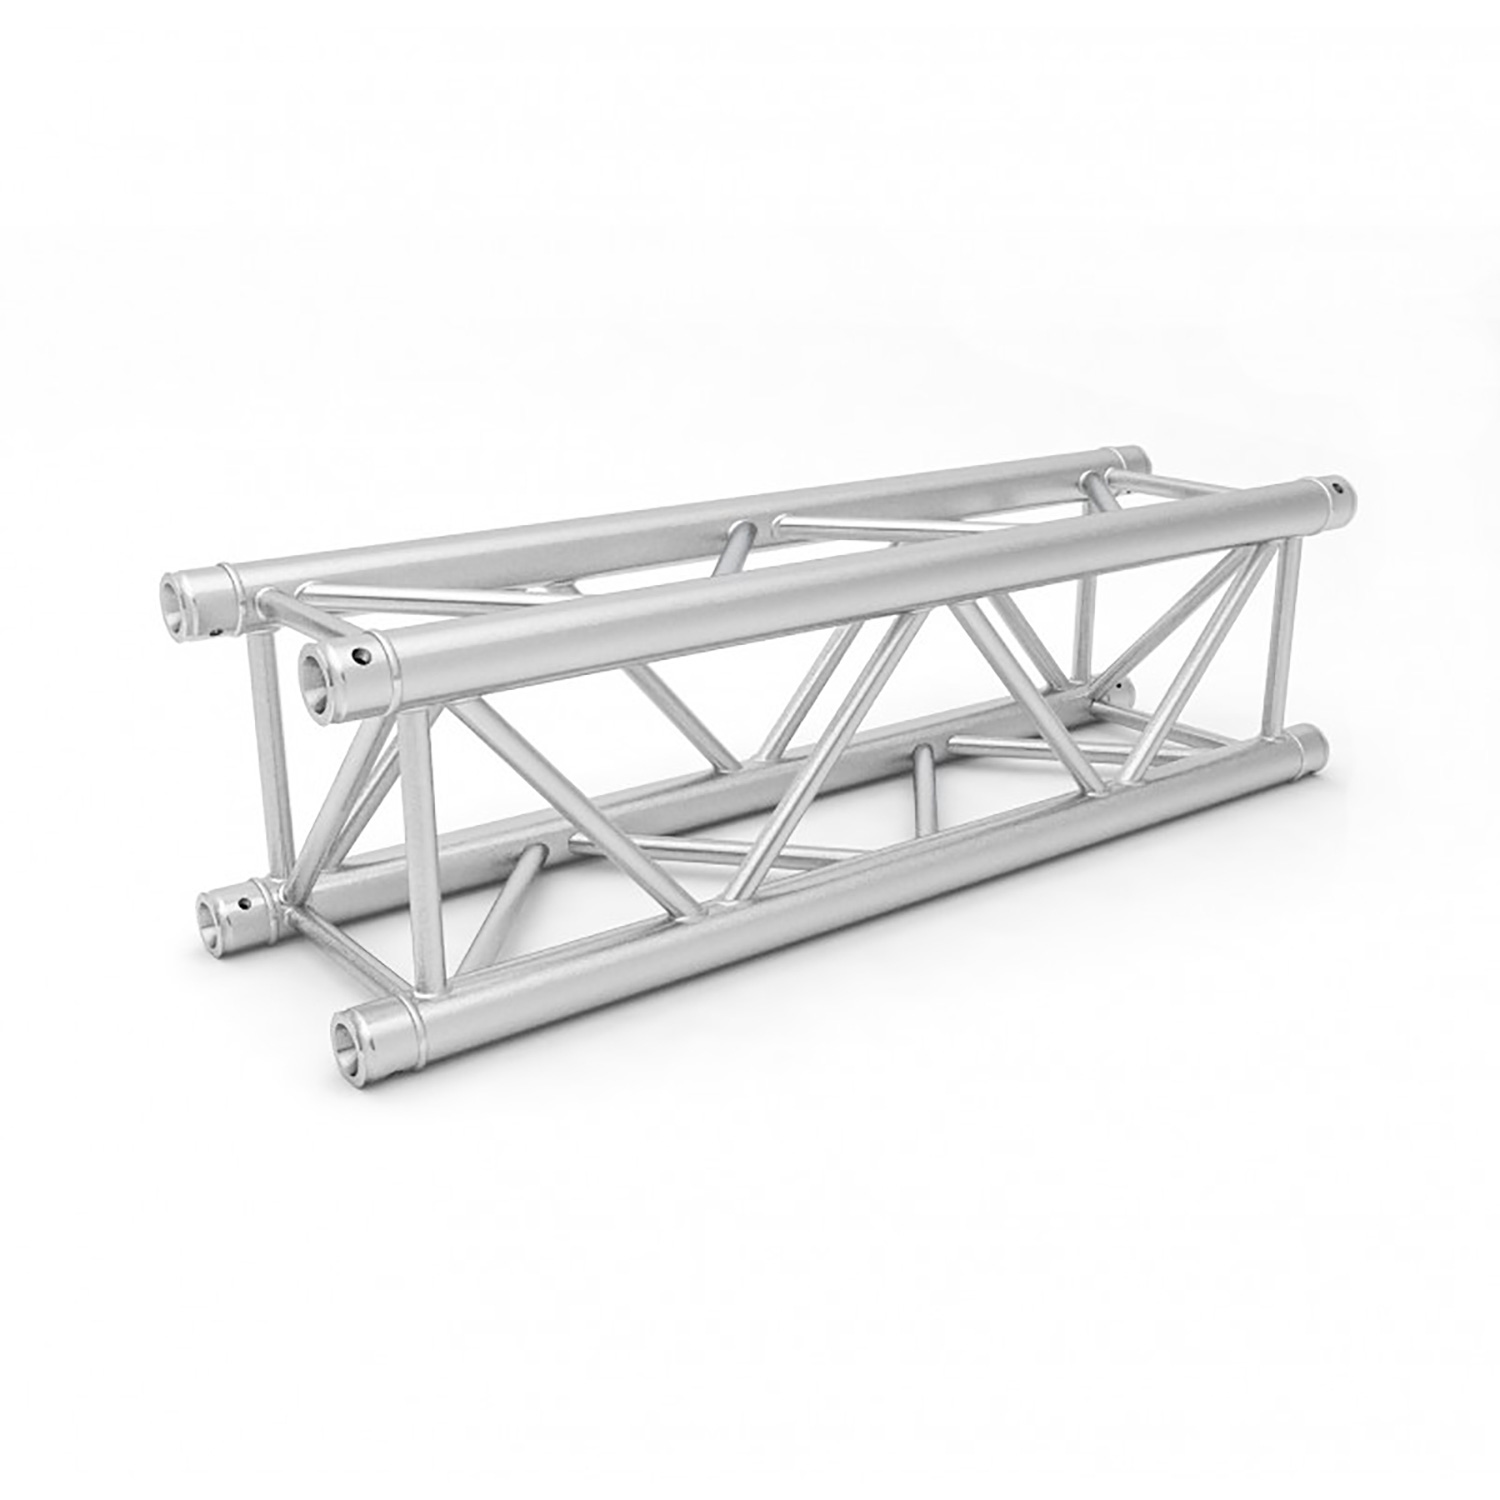 Straight Truss Section 200cm